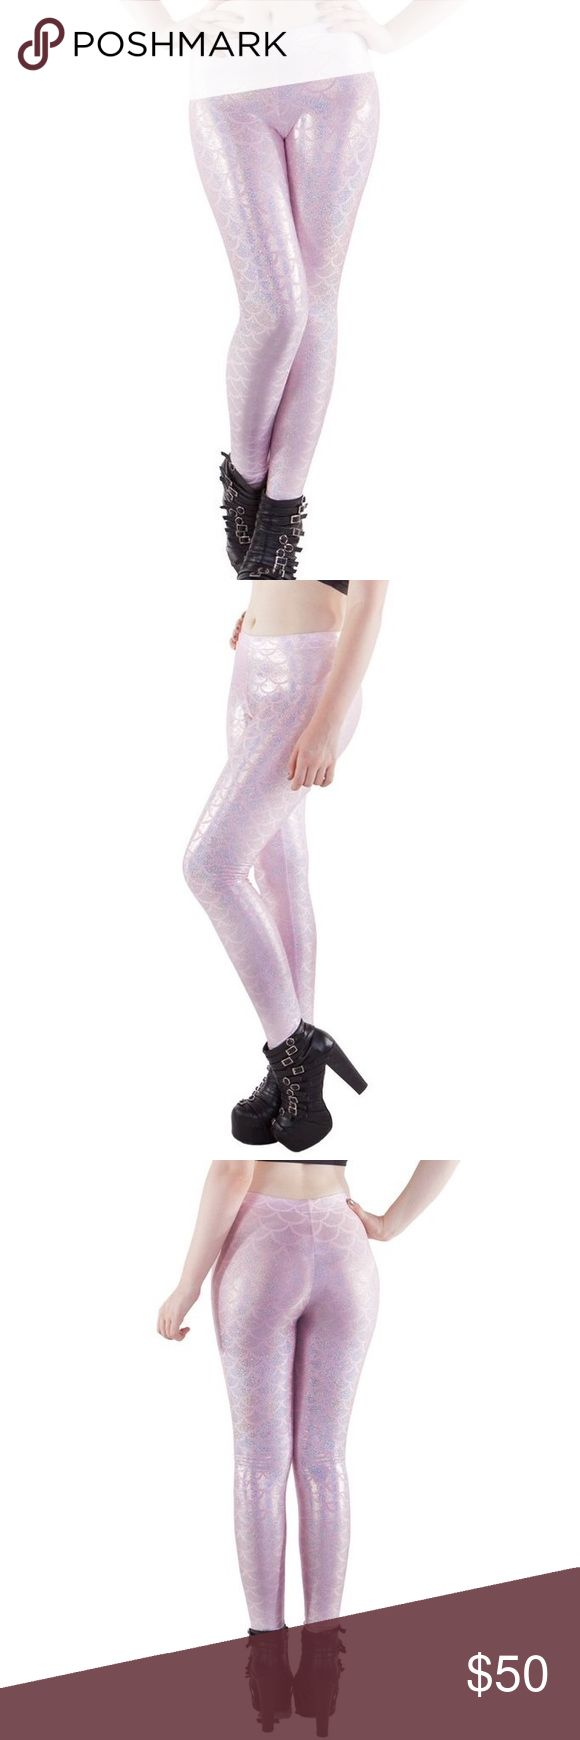 ✨ Living Dead Bubblepop Electric Mermaid Leggings Brand new with tags. Size Small. Pretty light pink Metallic mermaid scales. Australian brand Living Dead Clothing, made of nylon. Sold out online!! Blackmilk Pants Leggings